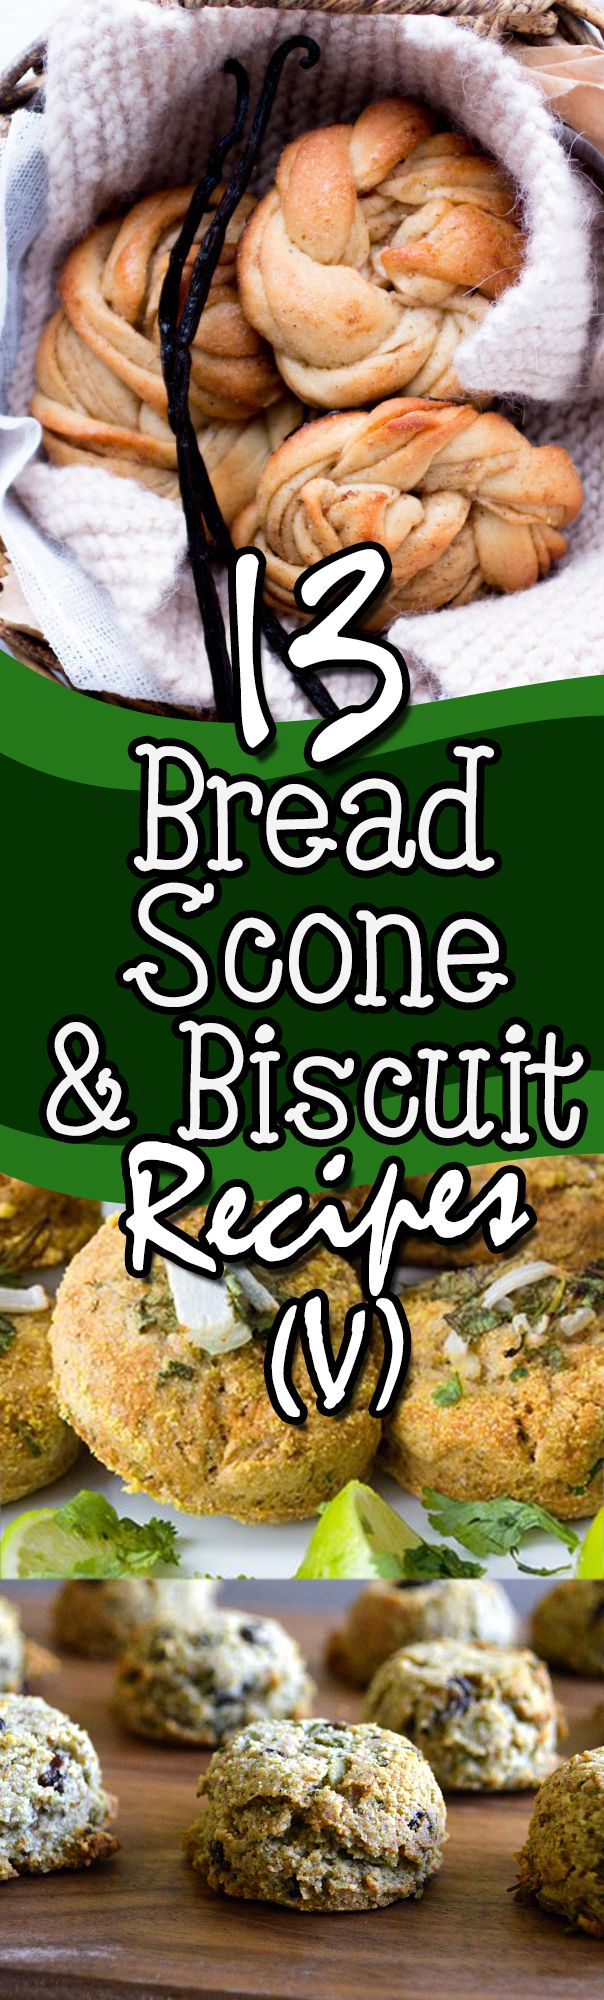 13 Amazing Bread, Scone & Biscuit Recipes from all over the Internet! Vegan / Vegetarian Friendly, too! #vegan #vegetarian #bread #scone #biscuit #recipe